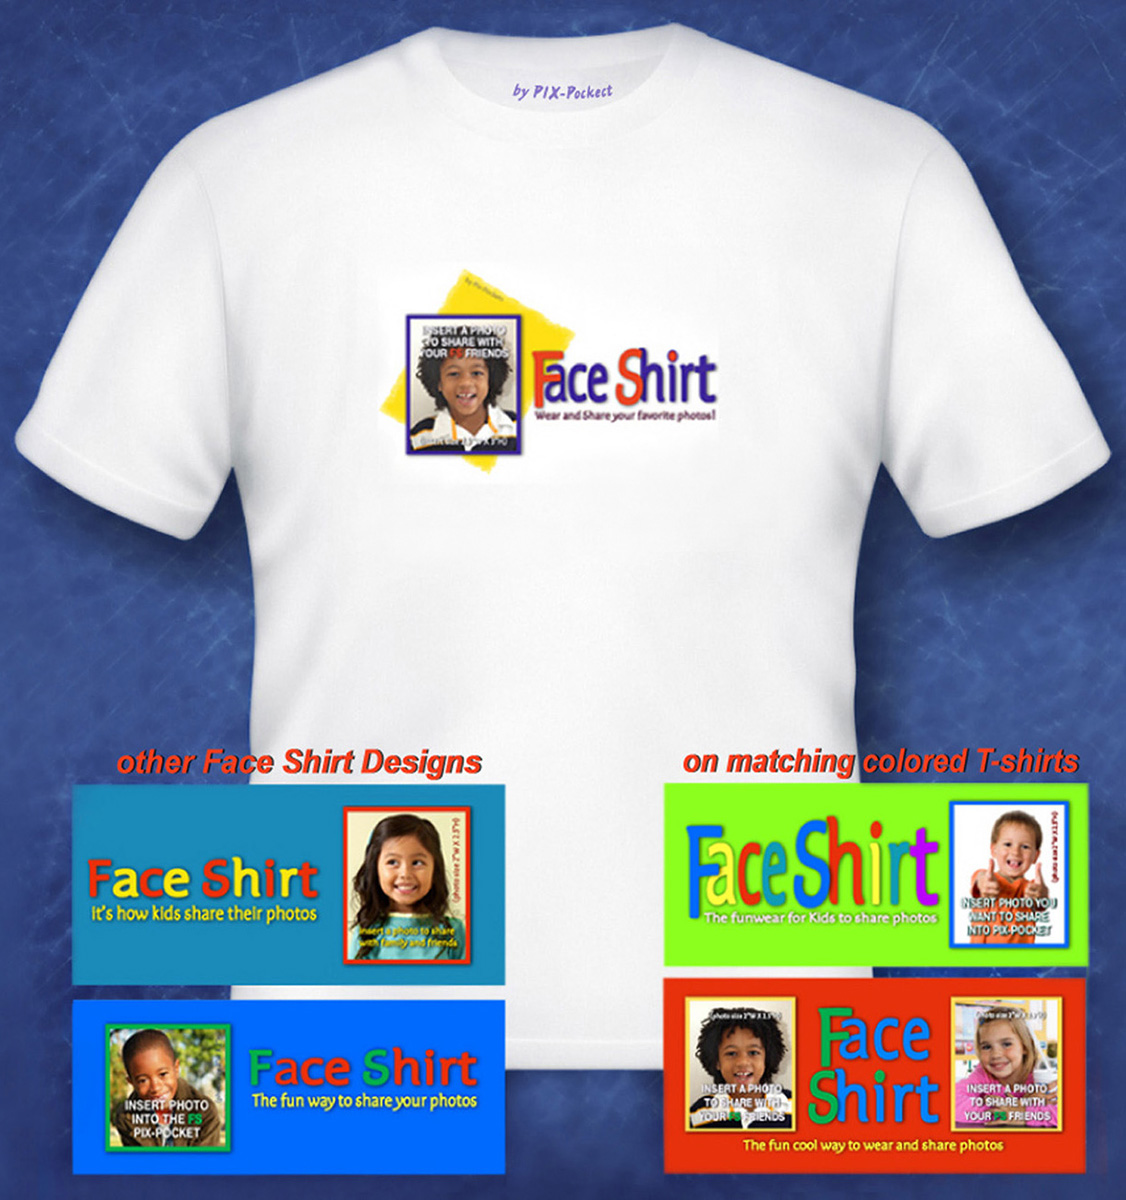 pix-pocket-face-shirt-1.jpg